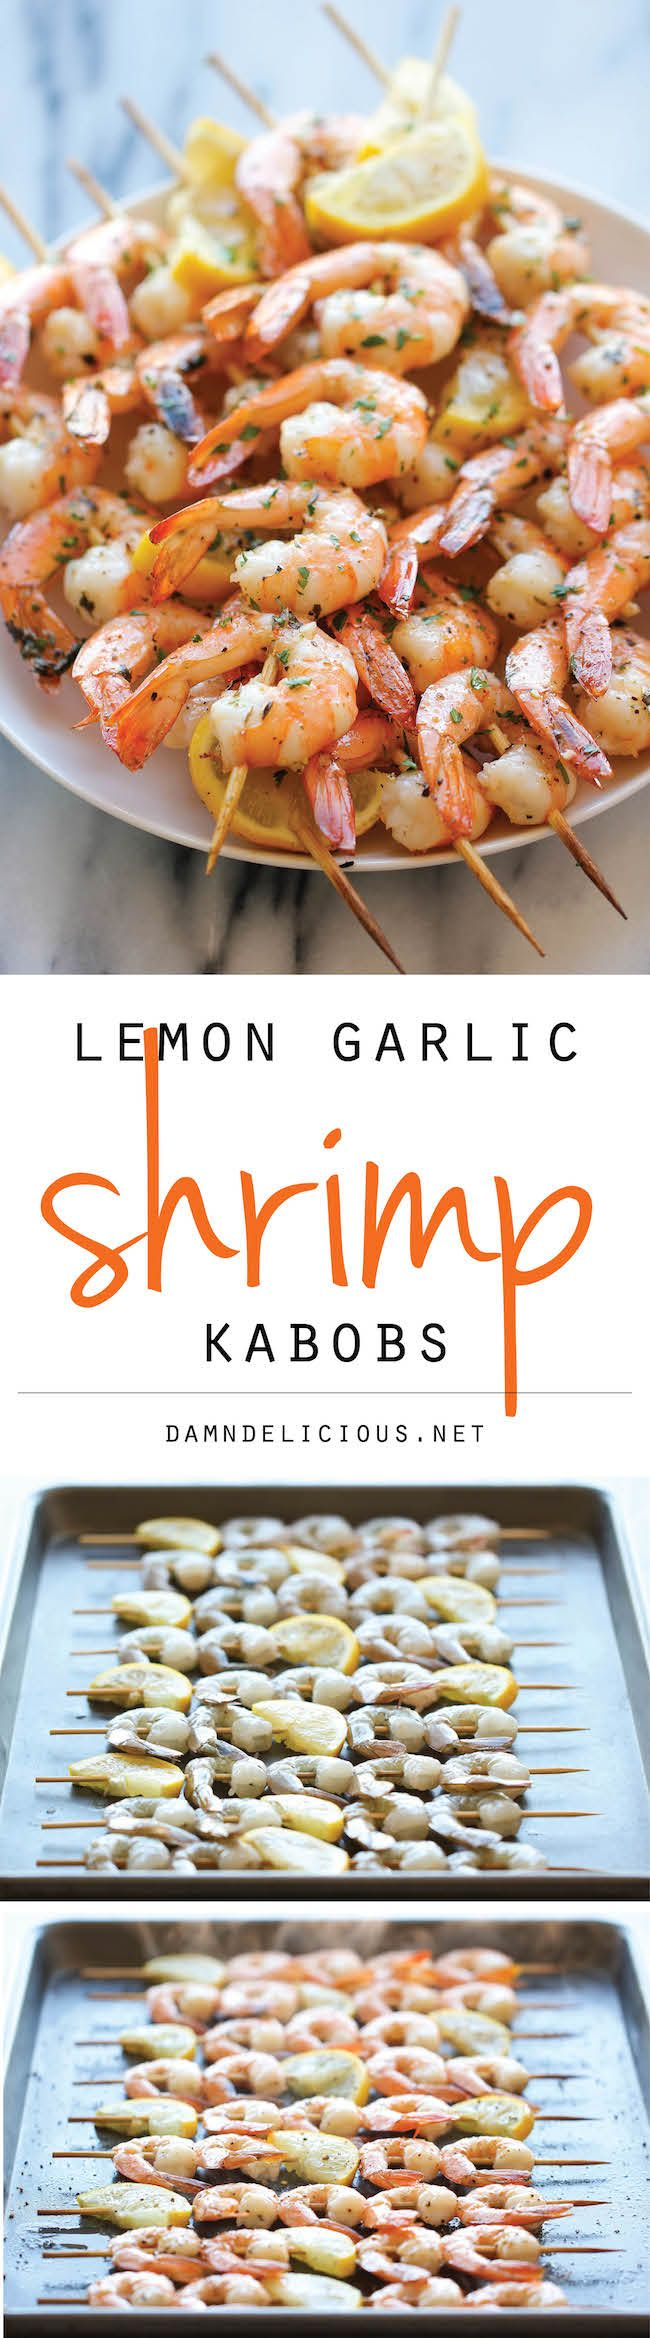 Lemon Garlic Shrimp Kabobs @FoodBlogs